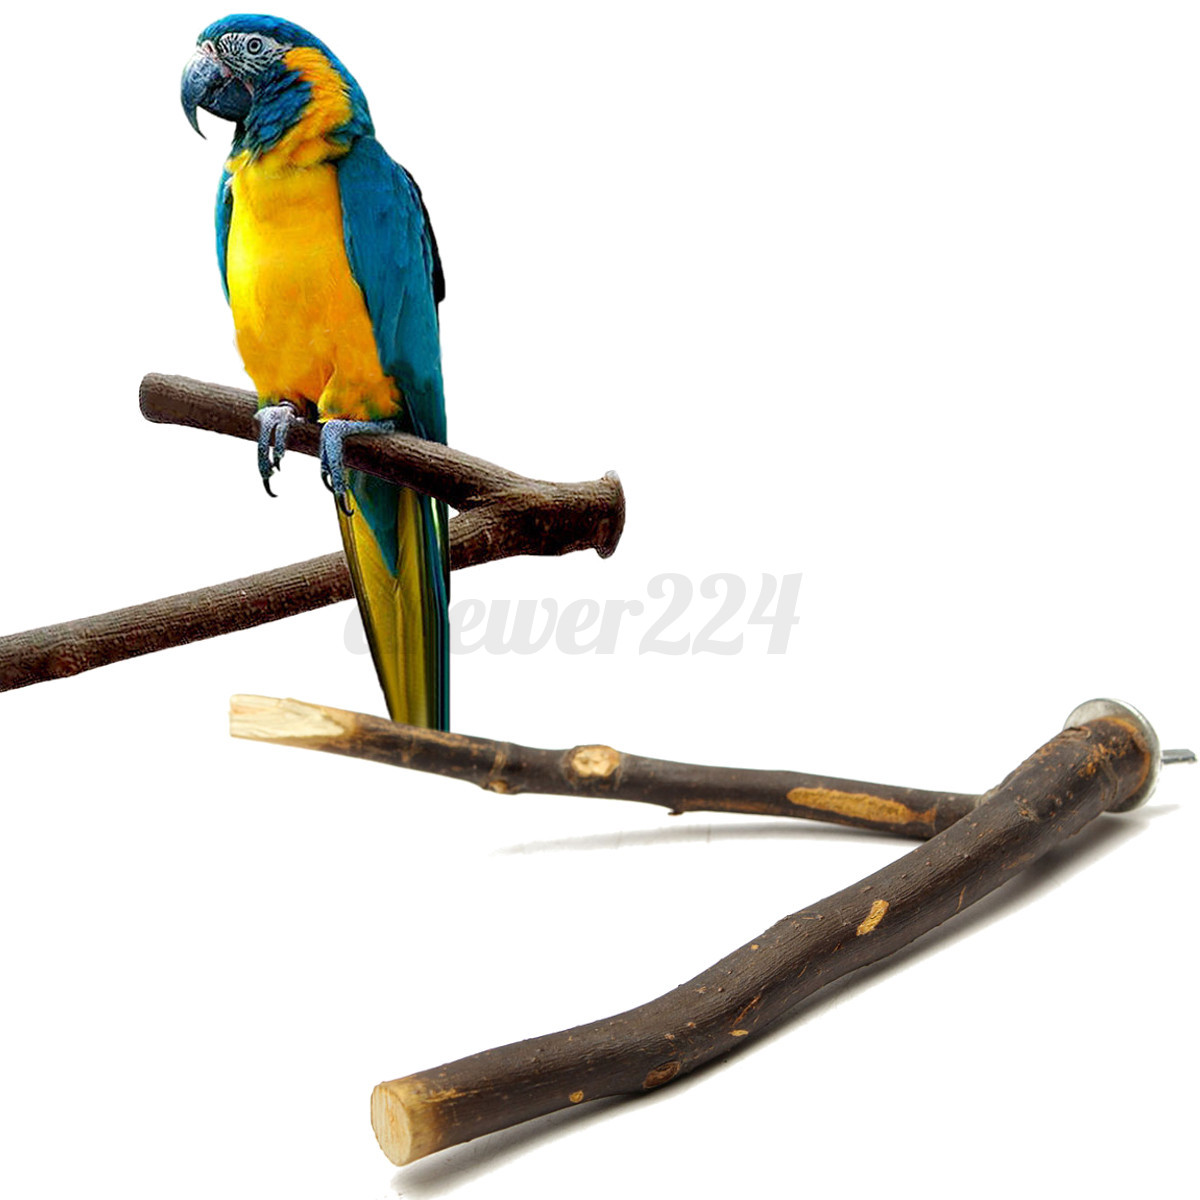 Very Impressive portraiture of Wooden Fork Bird Cage Perches Parrot Stand Pet Parakeet Budgie Hanging  with #C1810A color and 1200x1200 pixels